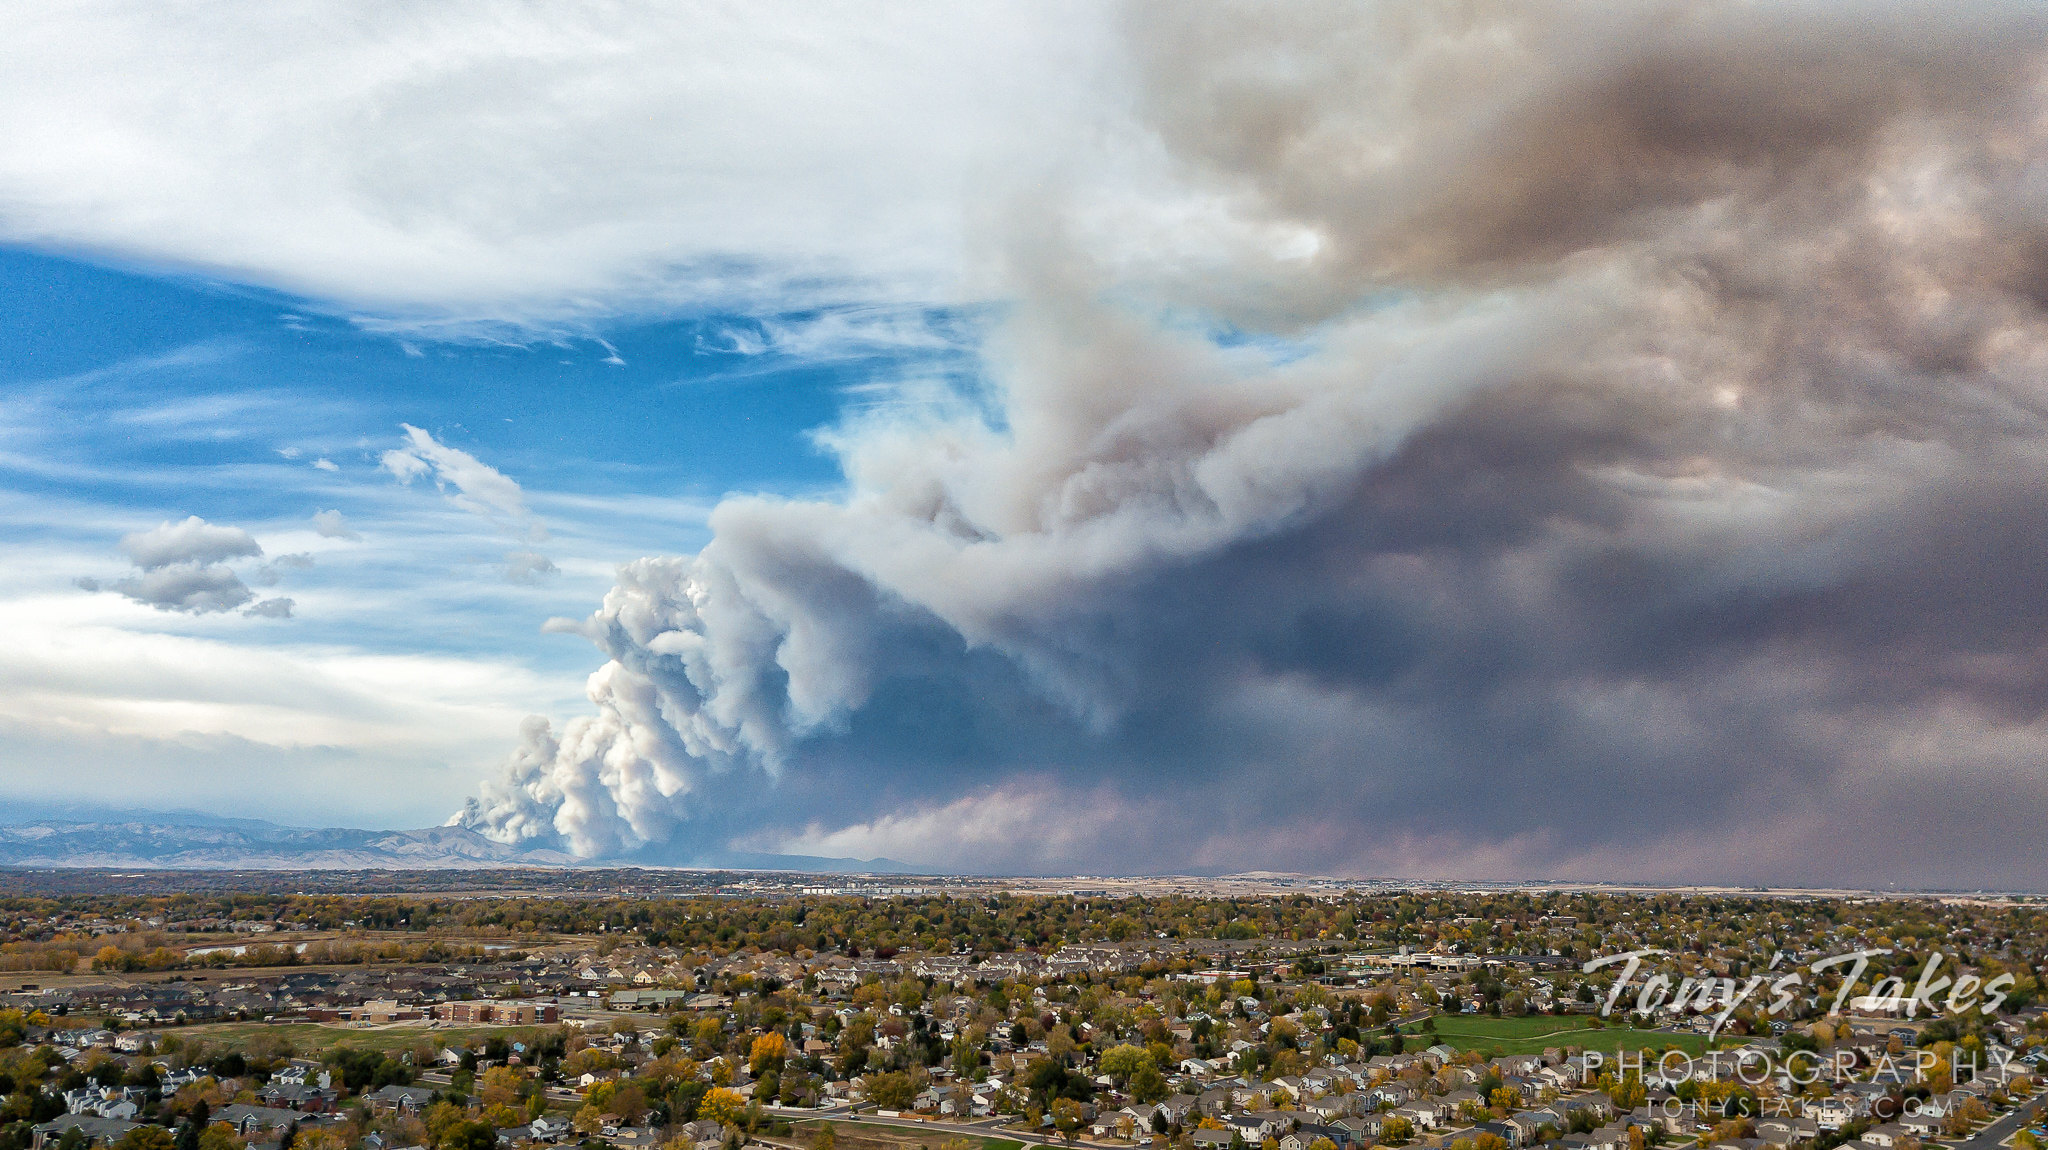 Another wildfire in Colorado